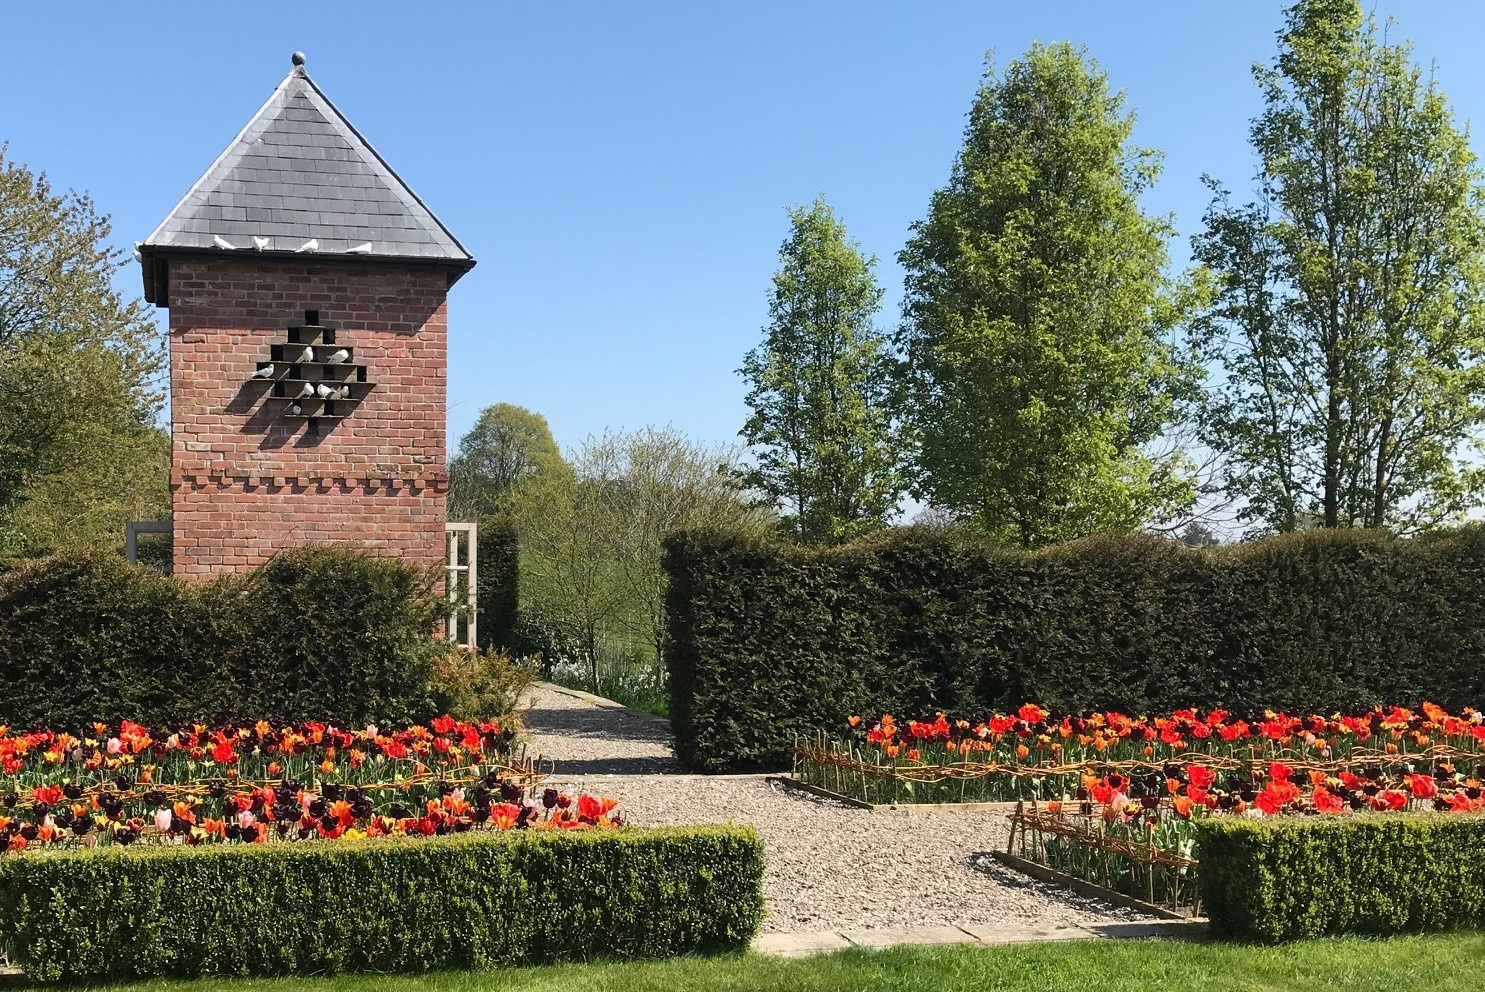 Tulips-and-dovecote-2